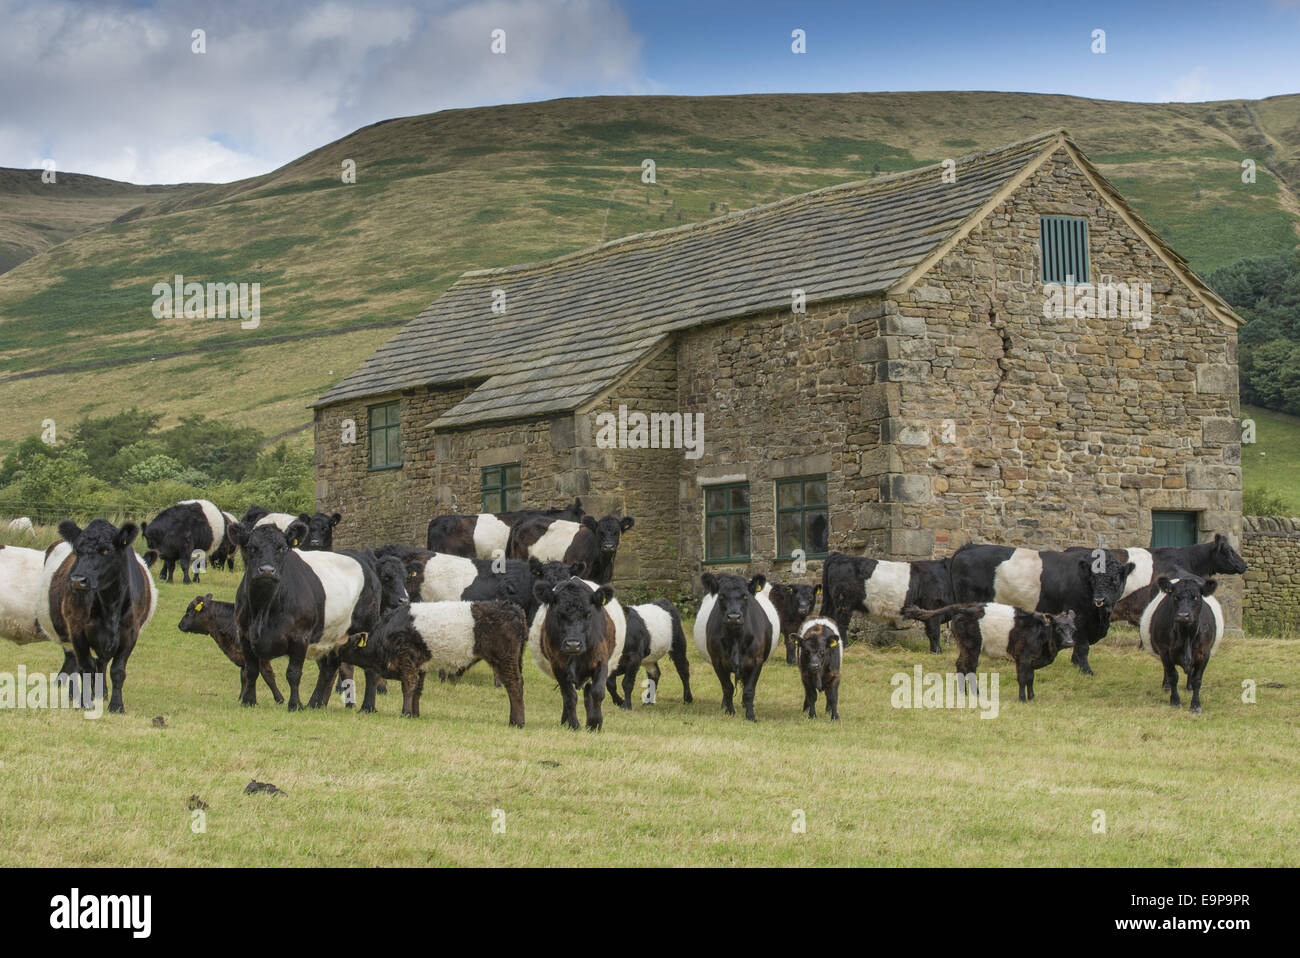 belted galloway hausrind stier k he und k lber herde auf der weide neben stein stehend feld. Black Bedroom Furniture Sets. Home Design Ideas